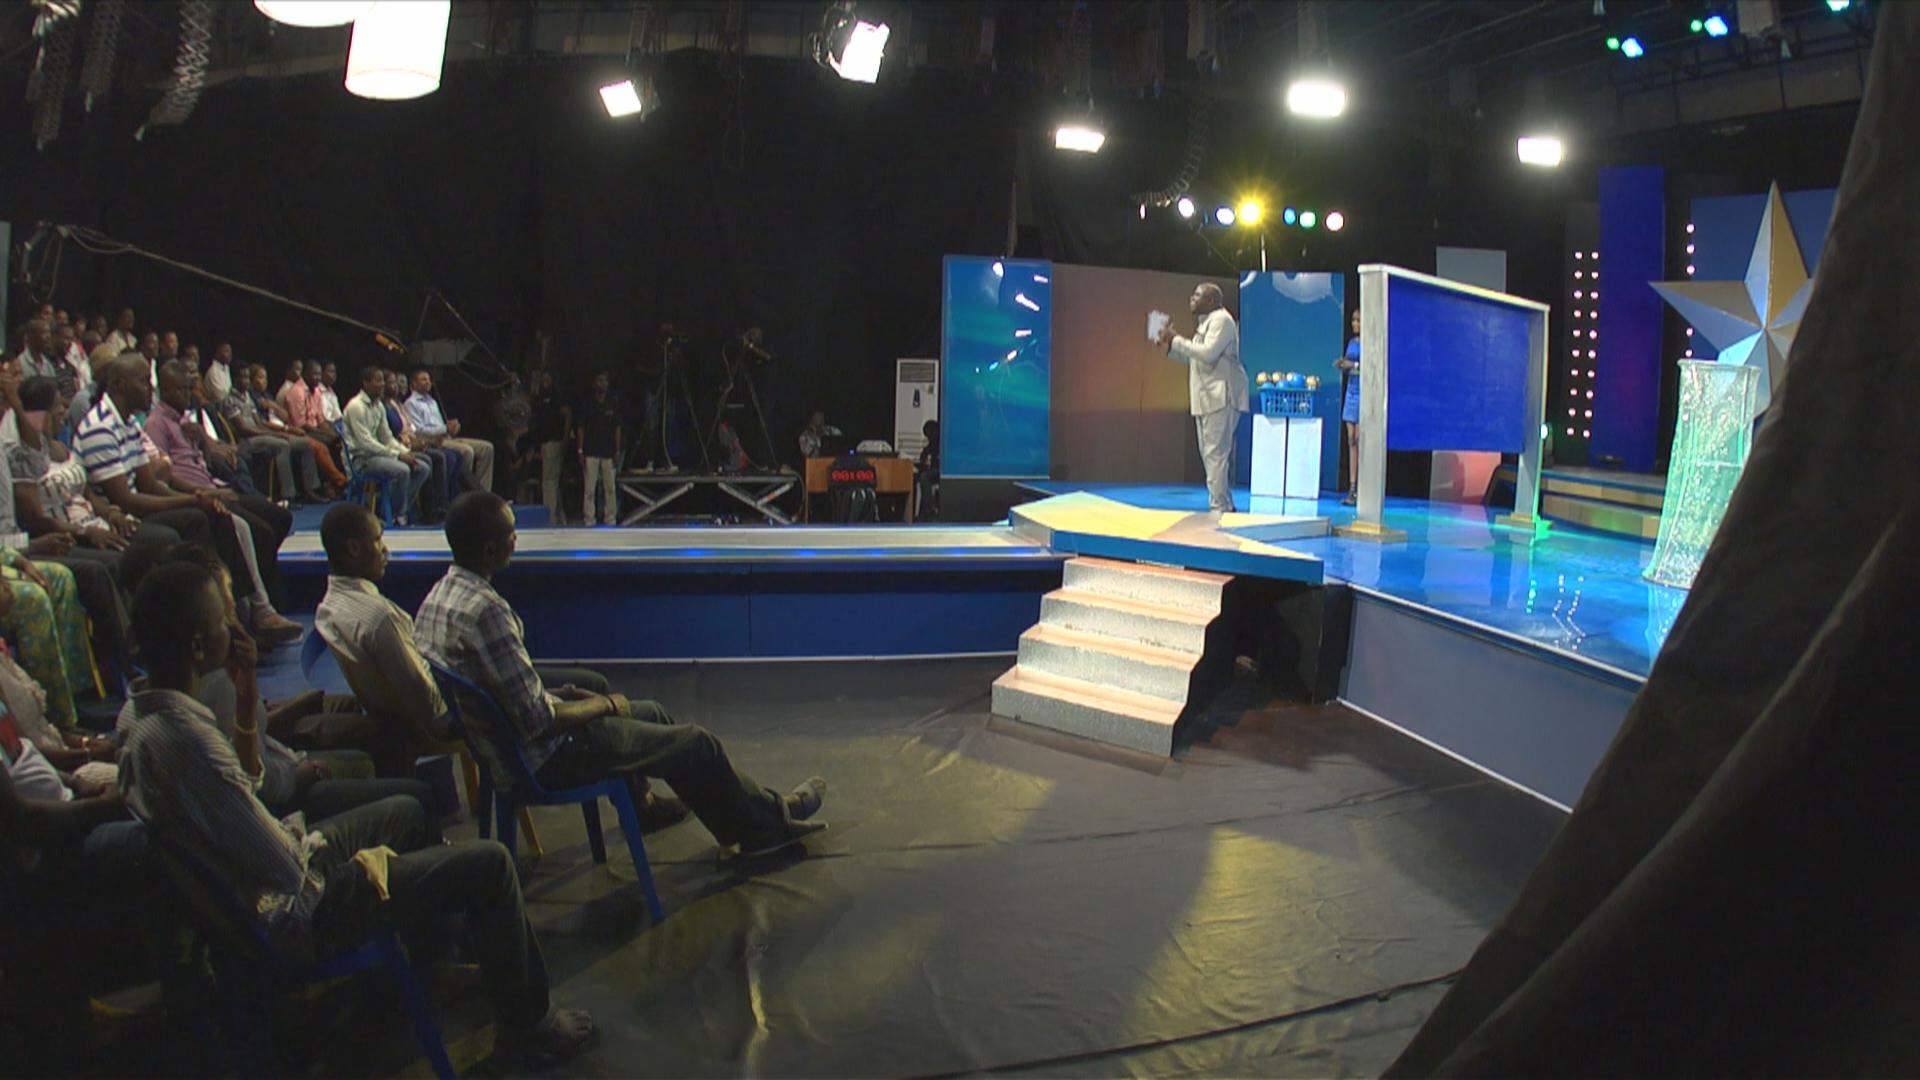 The Nigerian Game Show in session. The stage was designed and created by Pat Nebo and his crew.